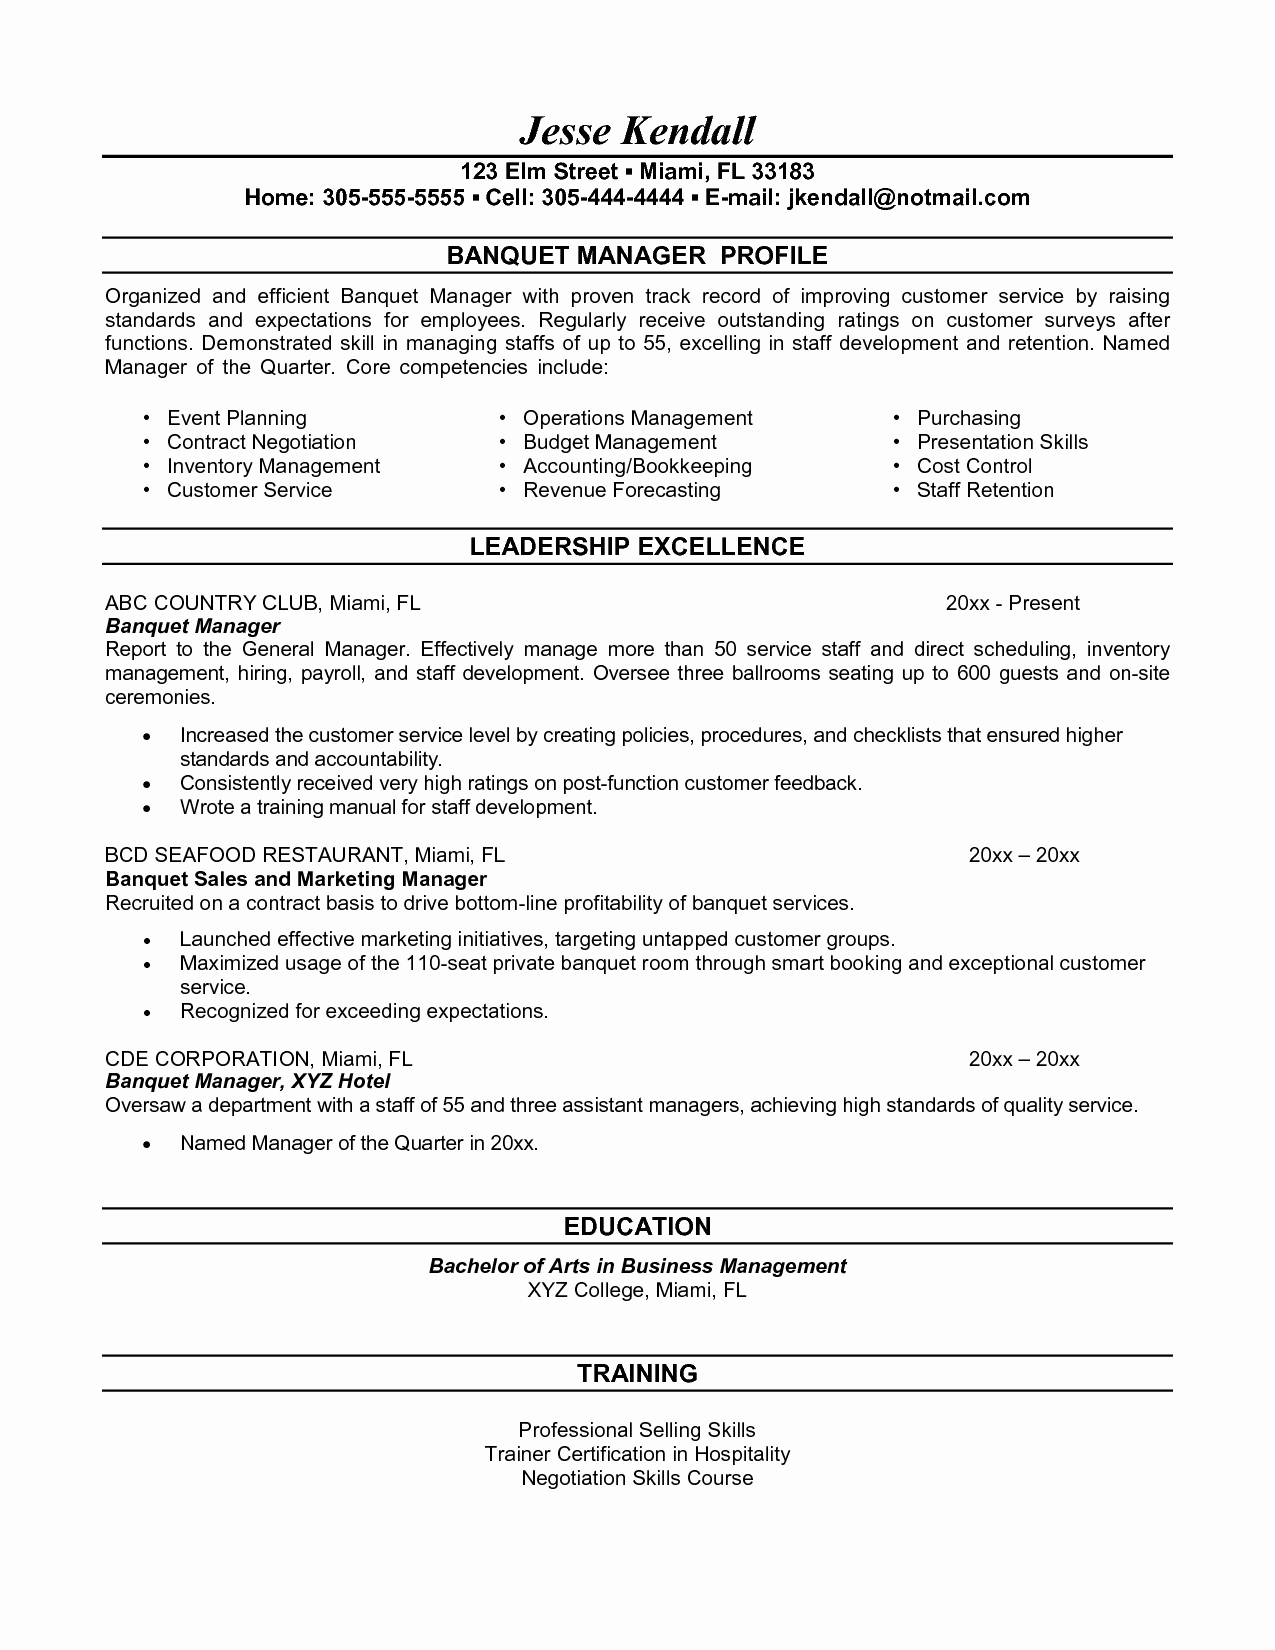 Sample Special Education Teacher Resumes - 30 Sample Special Education Teacher Resume